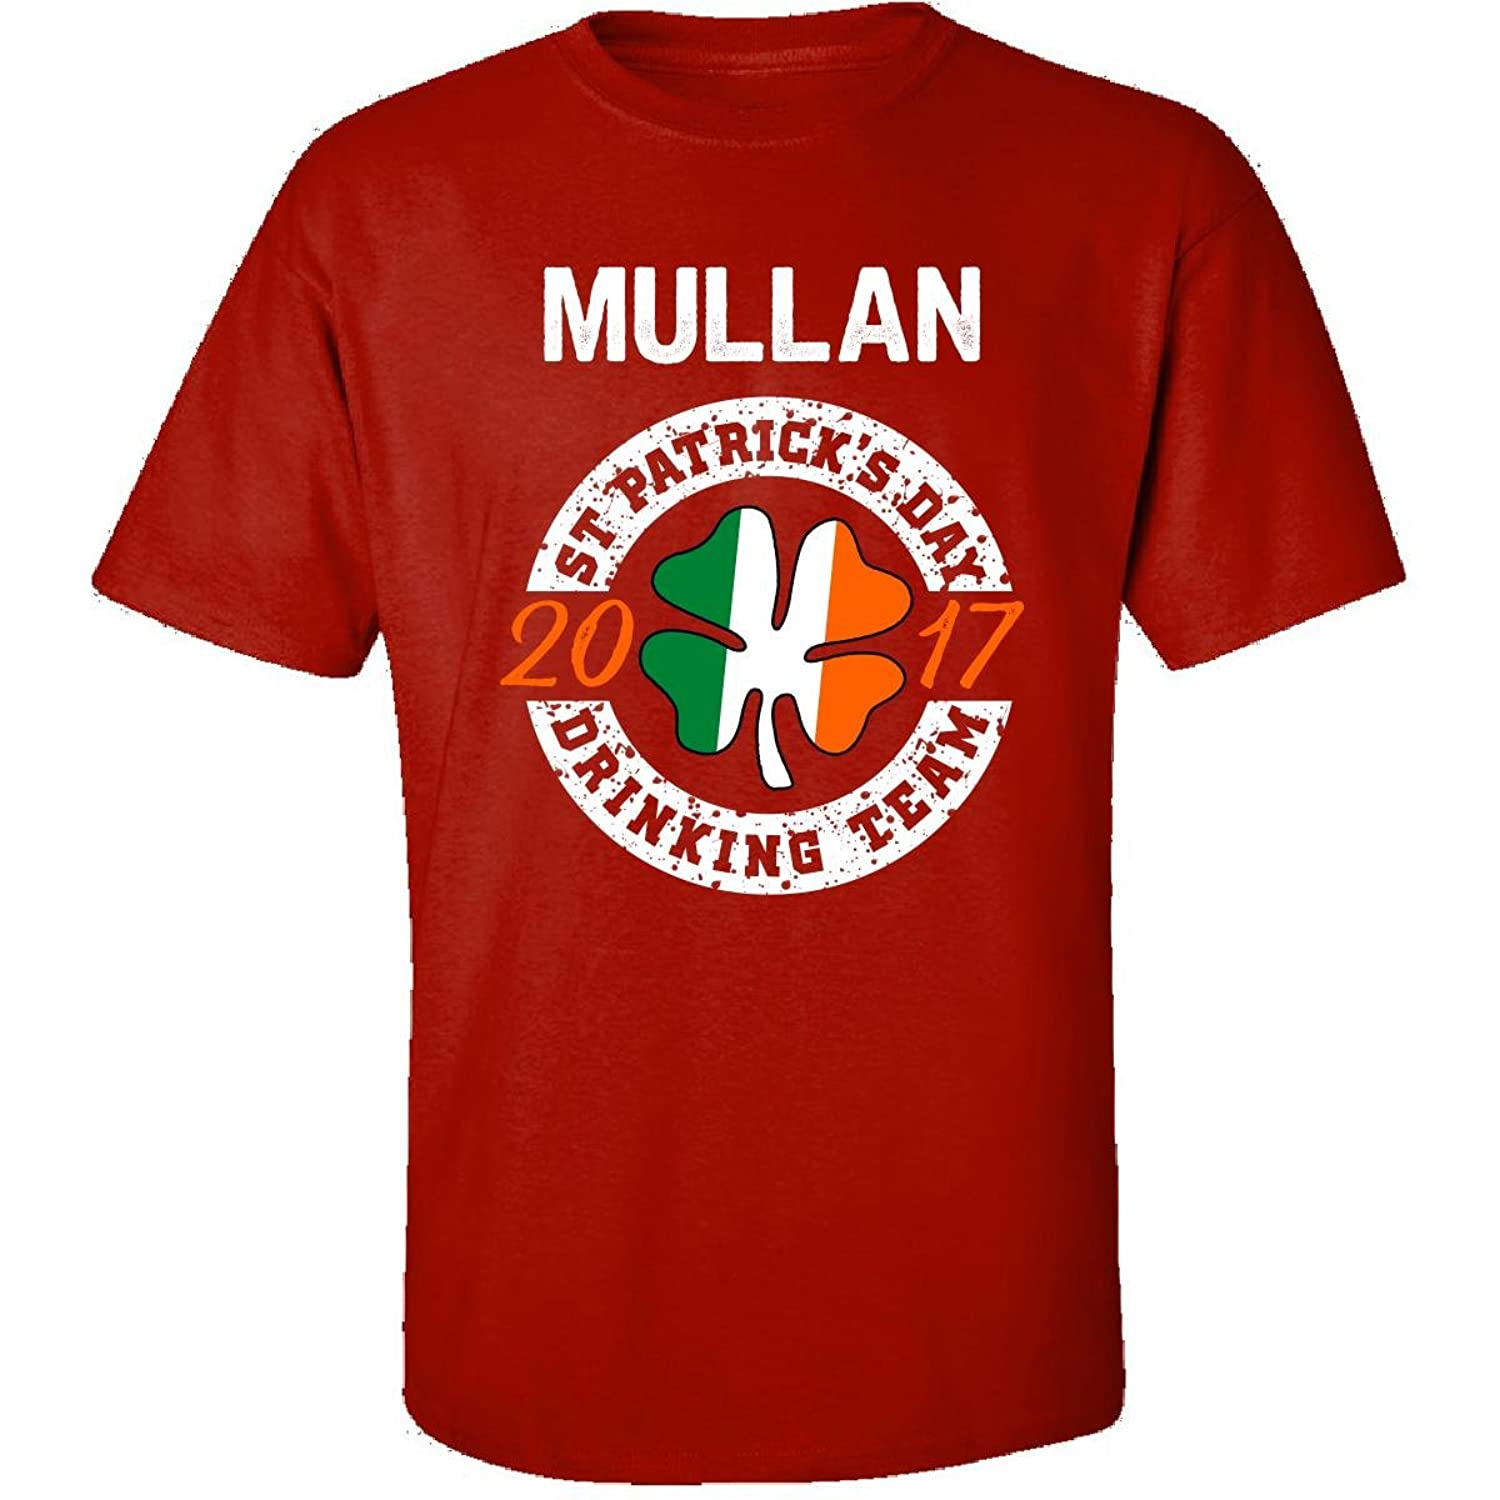 Mullan St Patricks Day 2017 Drinking Team Irish - Adult Shirt